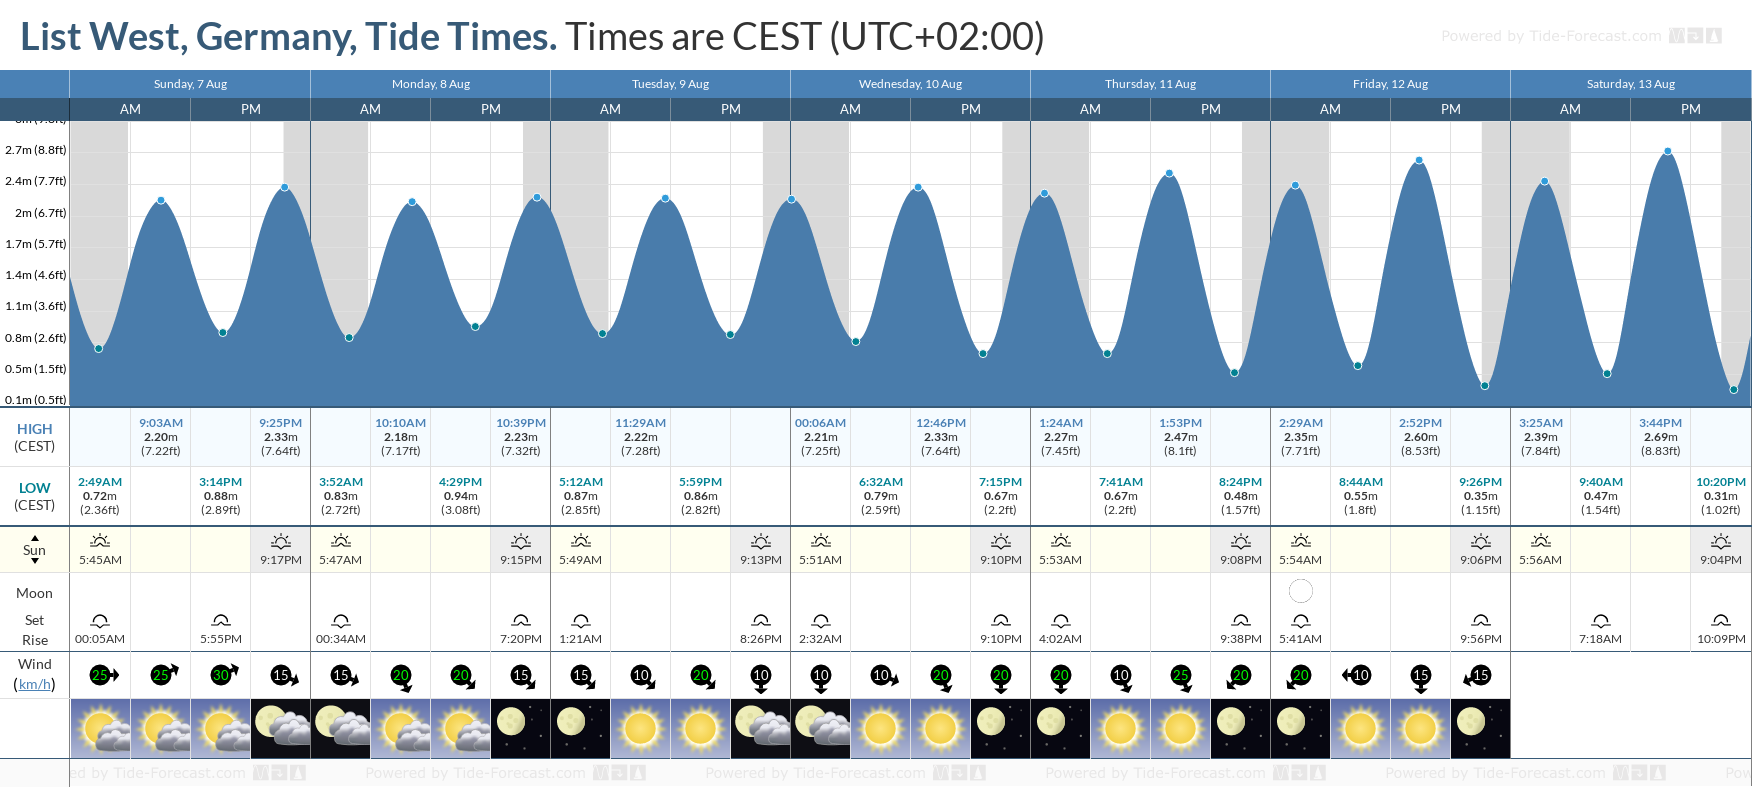 List West, Germany Tide Chart including high and low tide tide times for the next 7 days